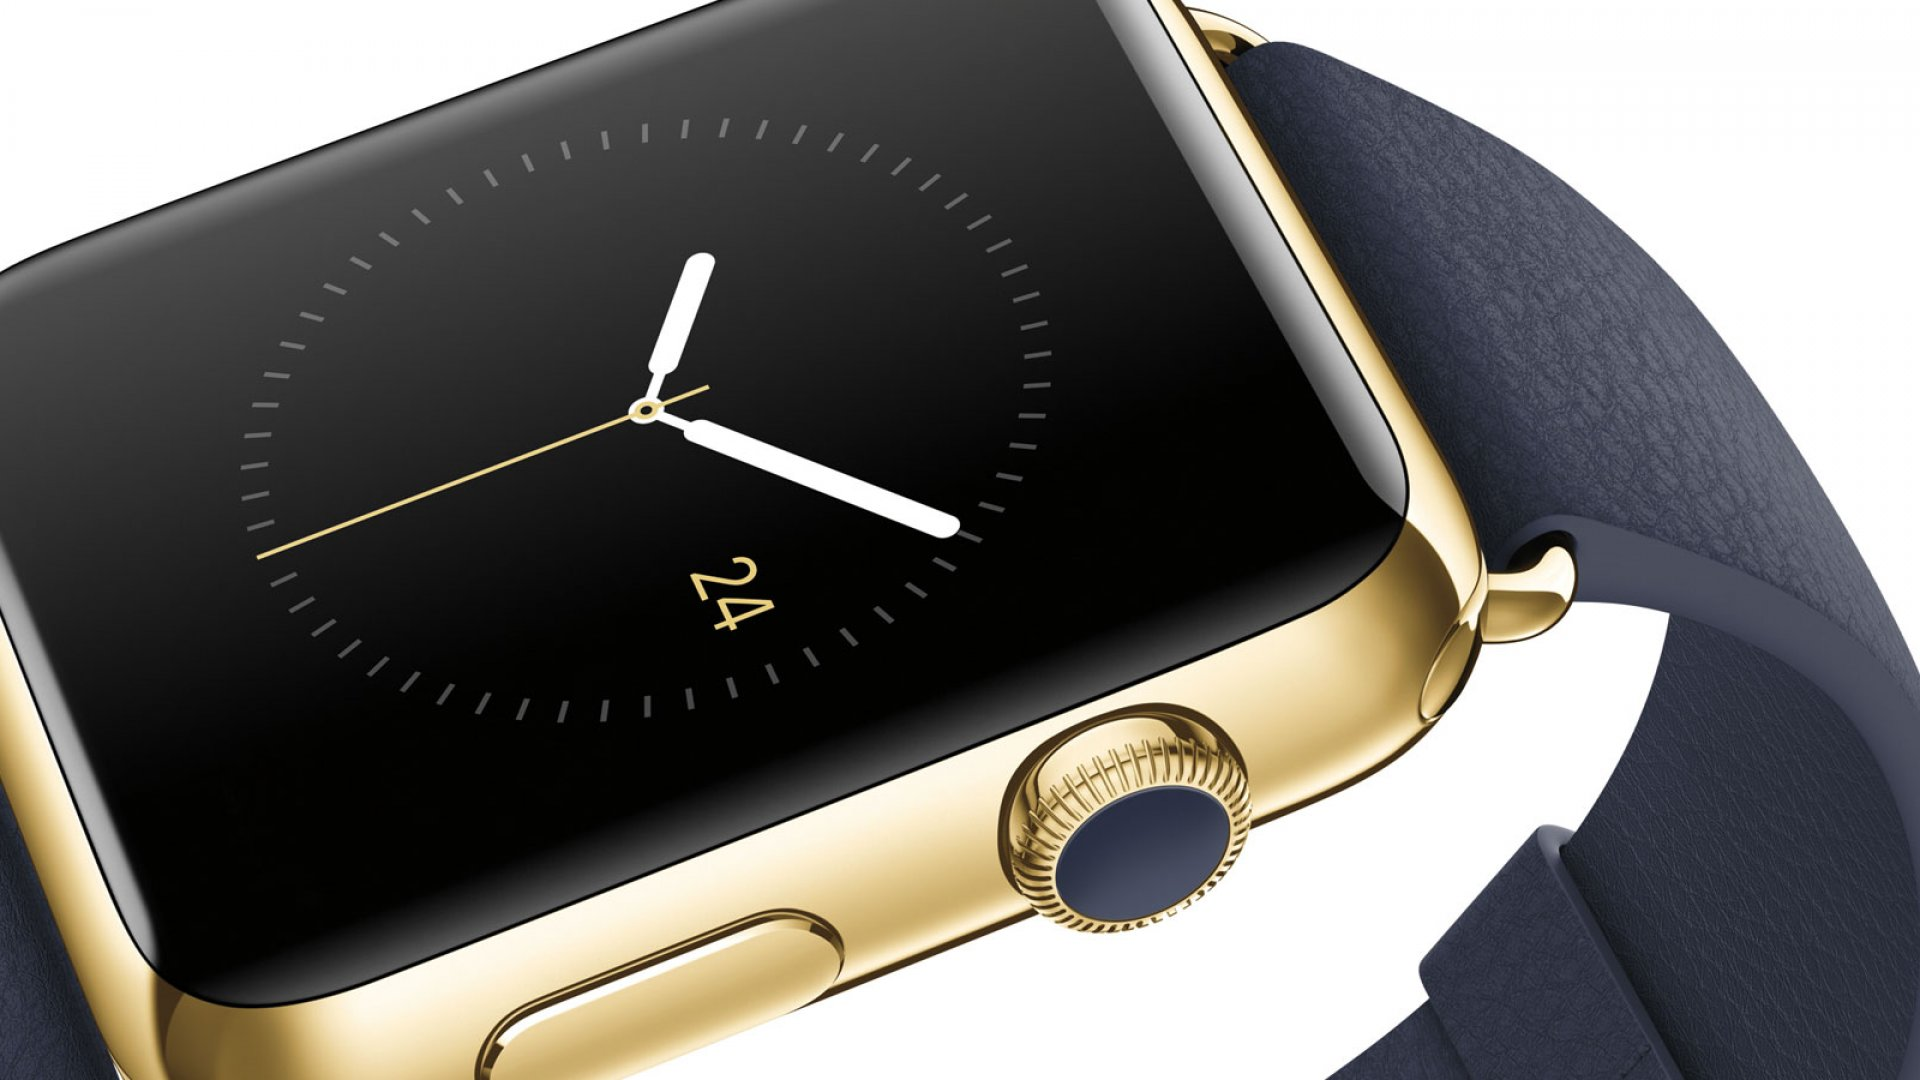 The basic Watch model will set you back $349. Pictured above is the $10,000 18-karat gold Watch.